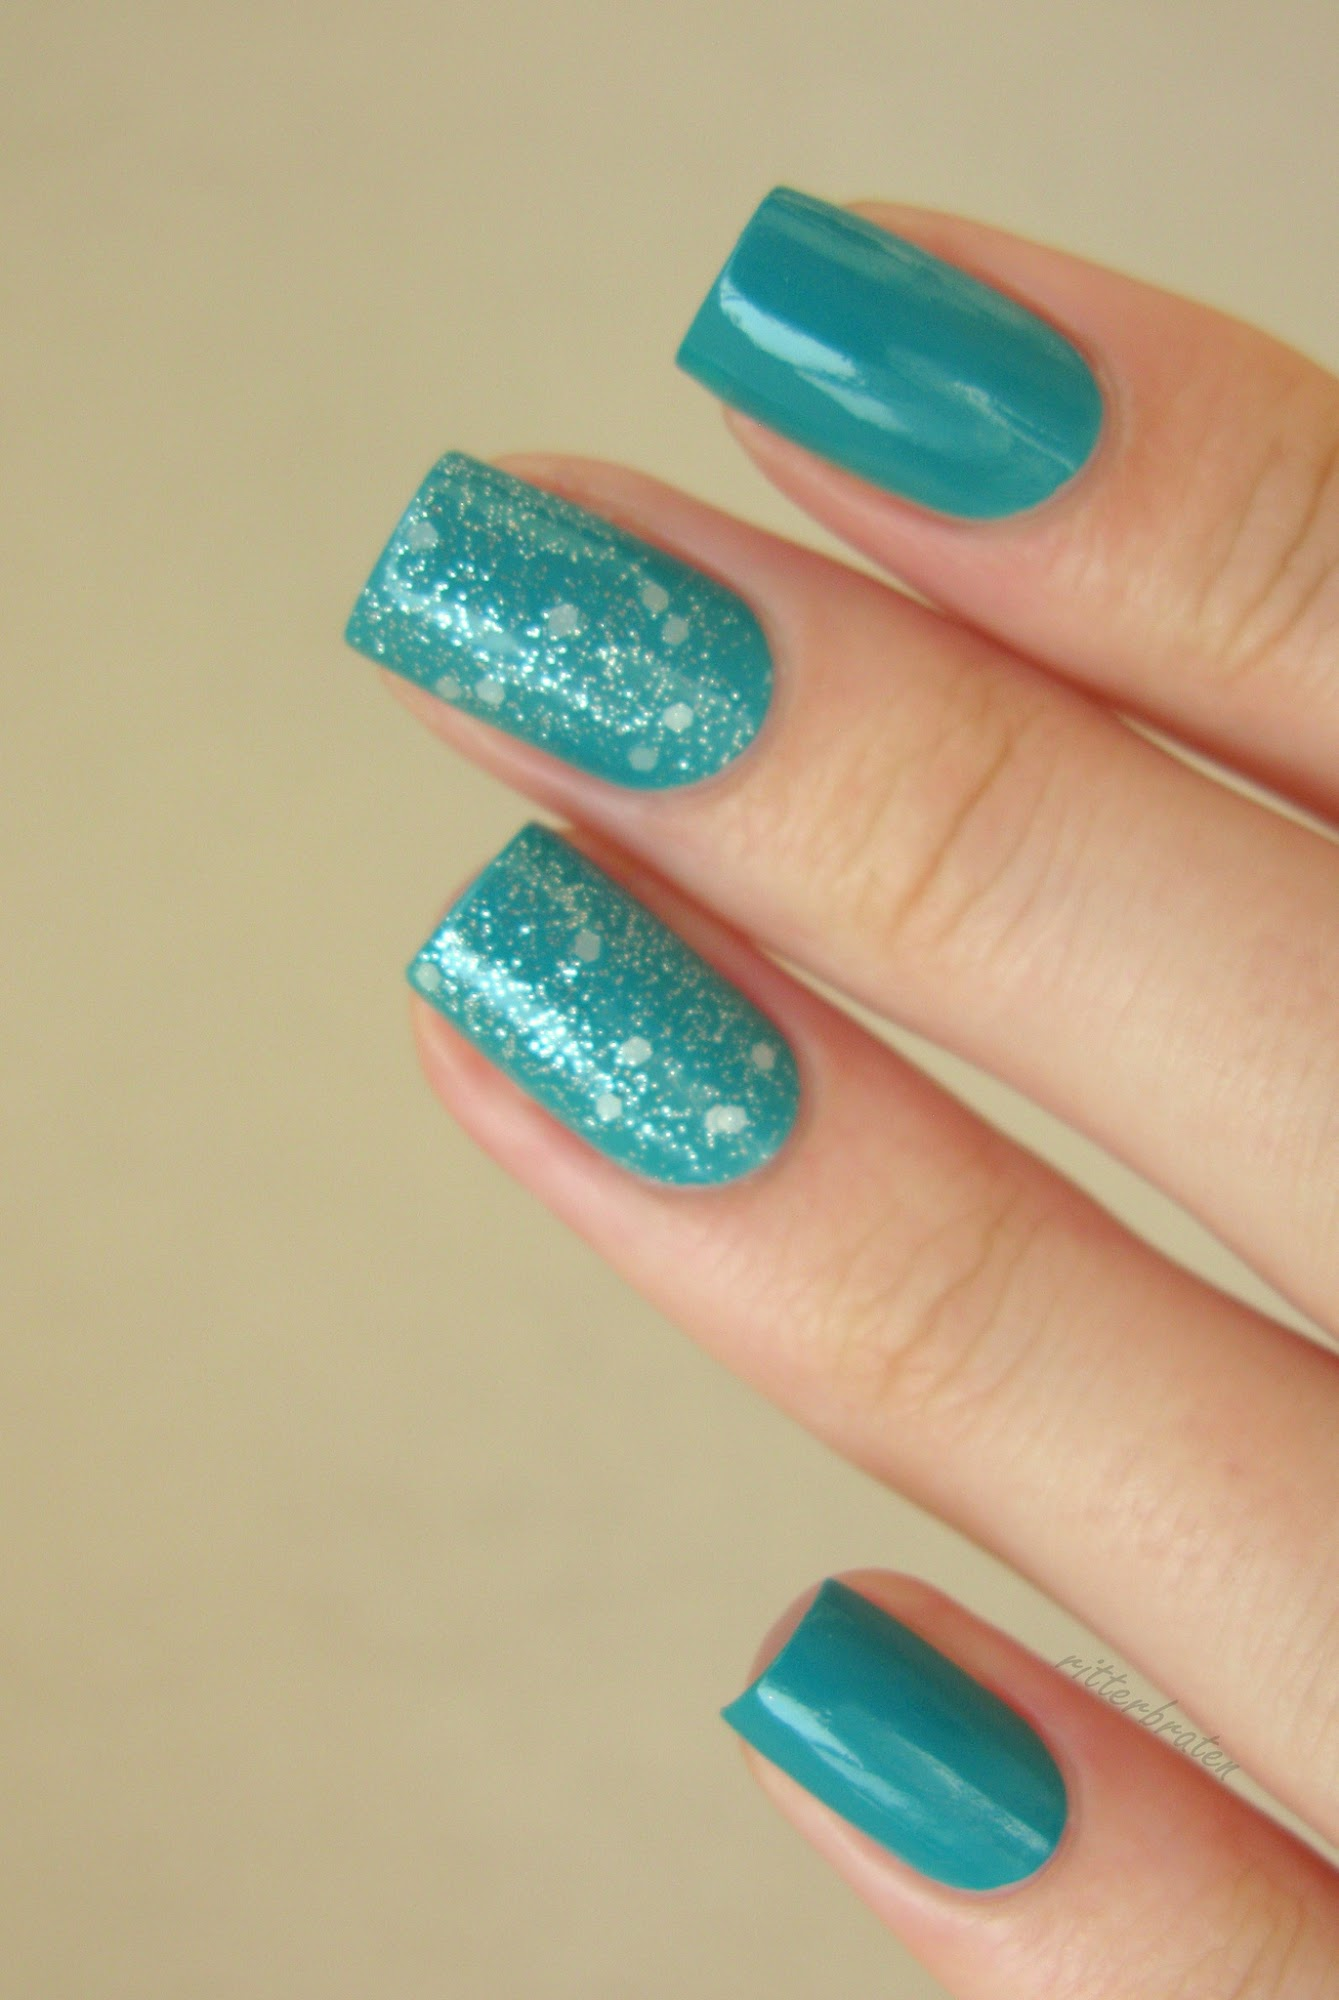 OPI Pirouette My Whistle over teal